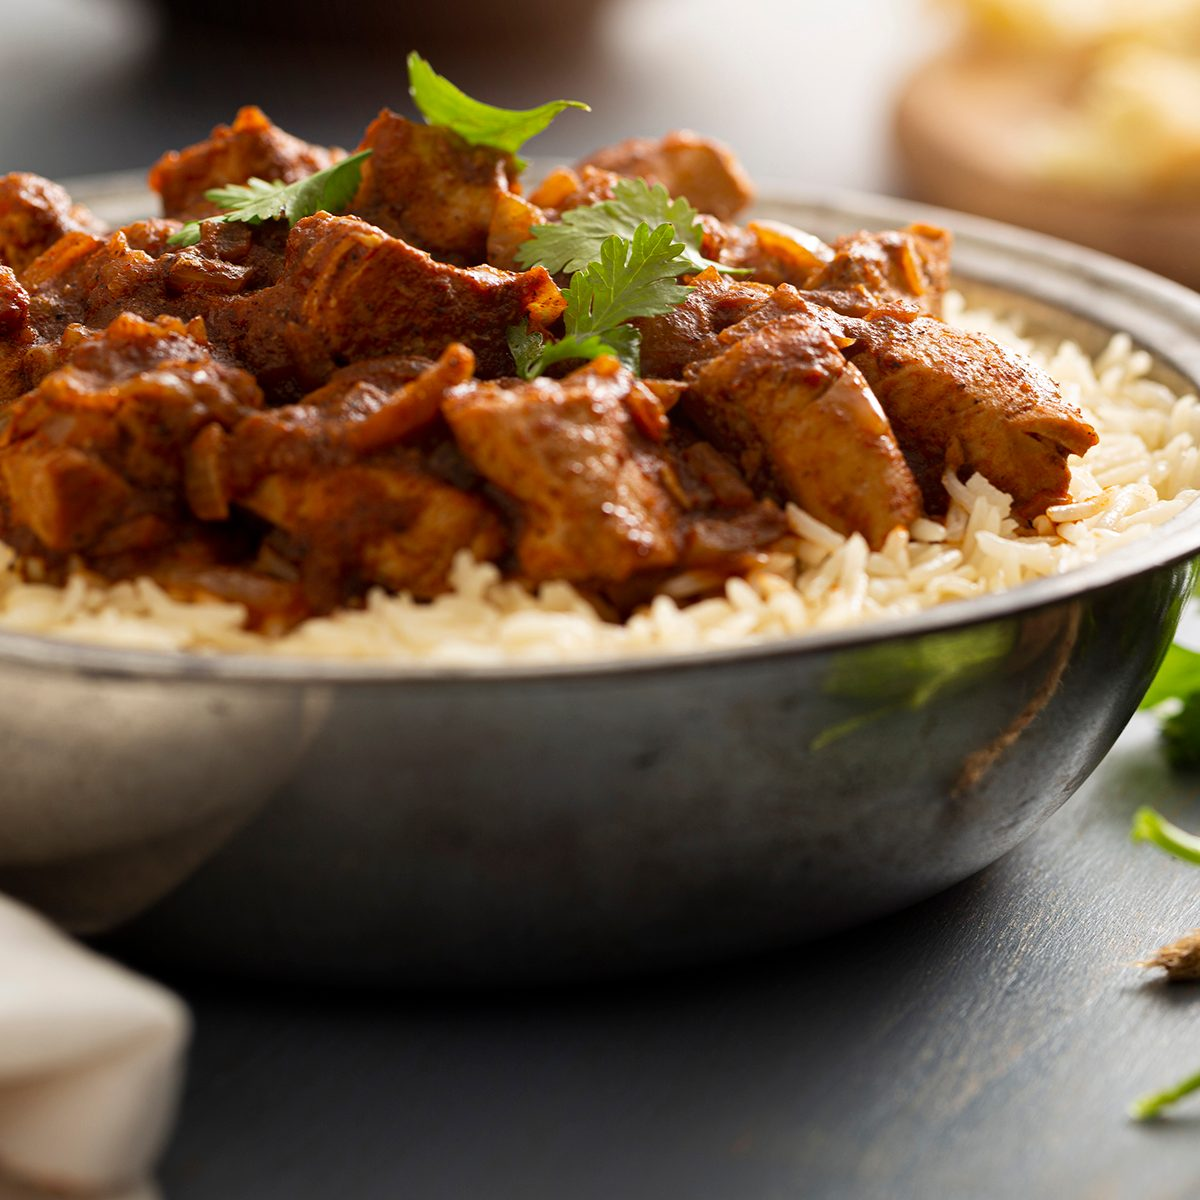 indian main dishes Indian Food Chicken Vindaloo Curry Over Basmati Rice